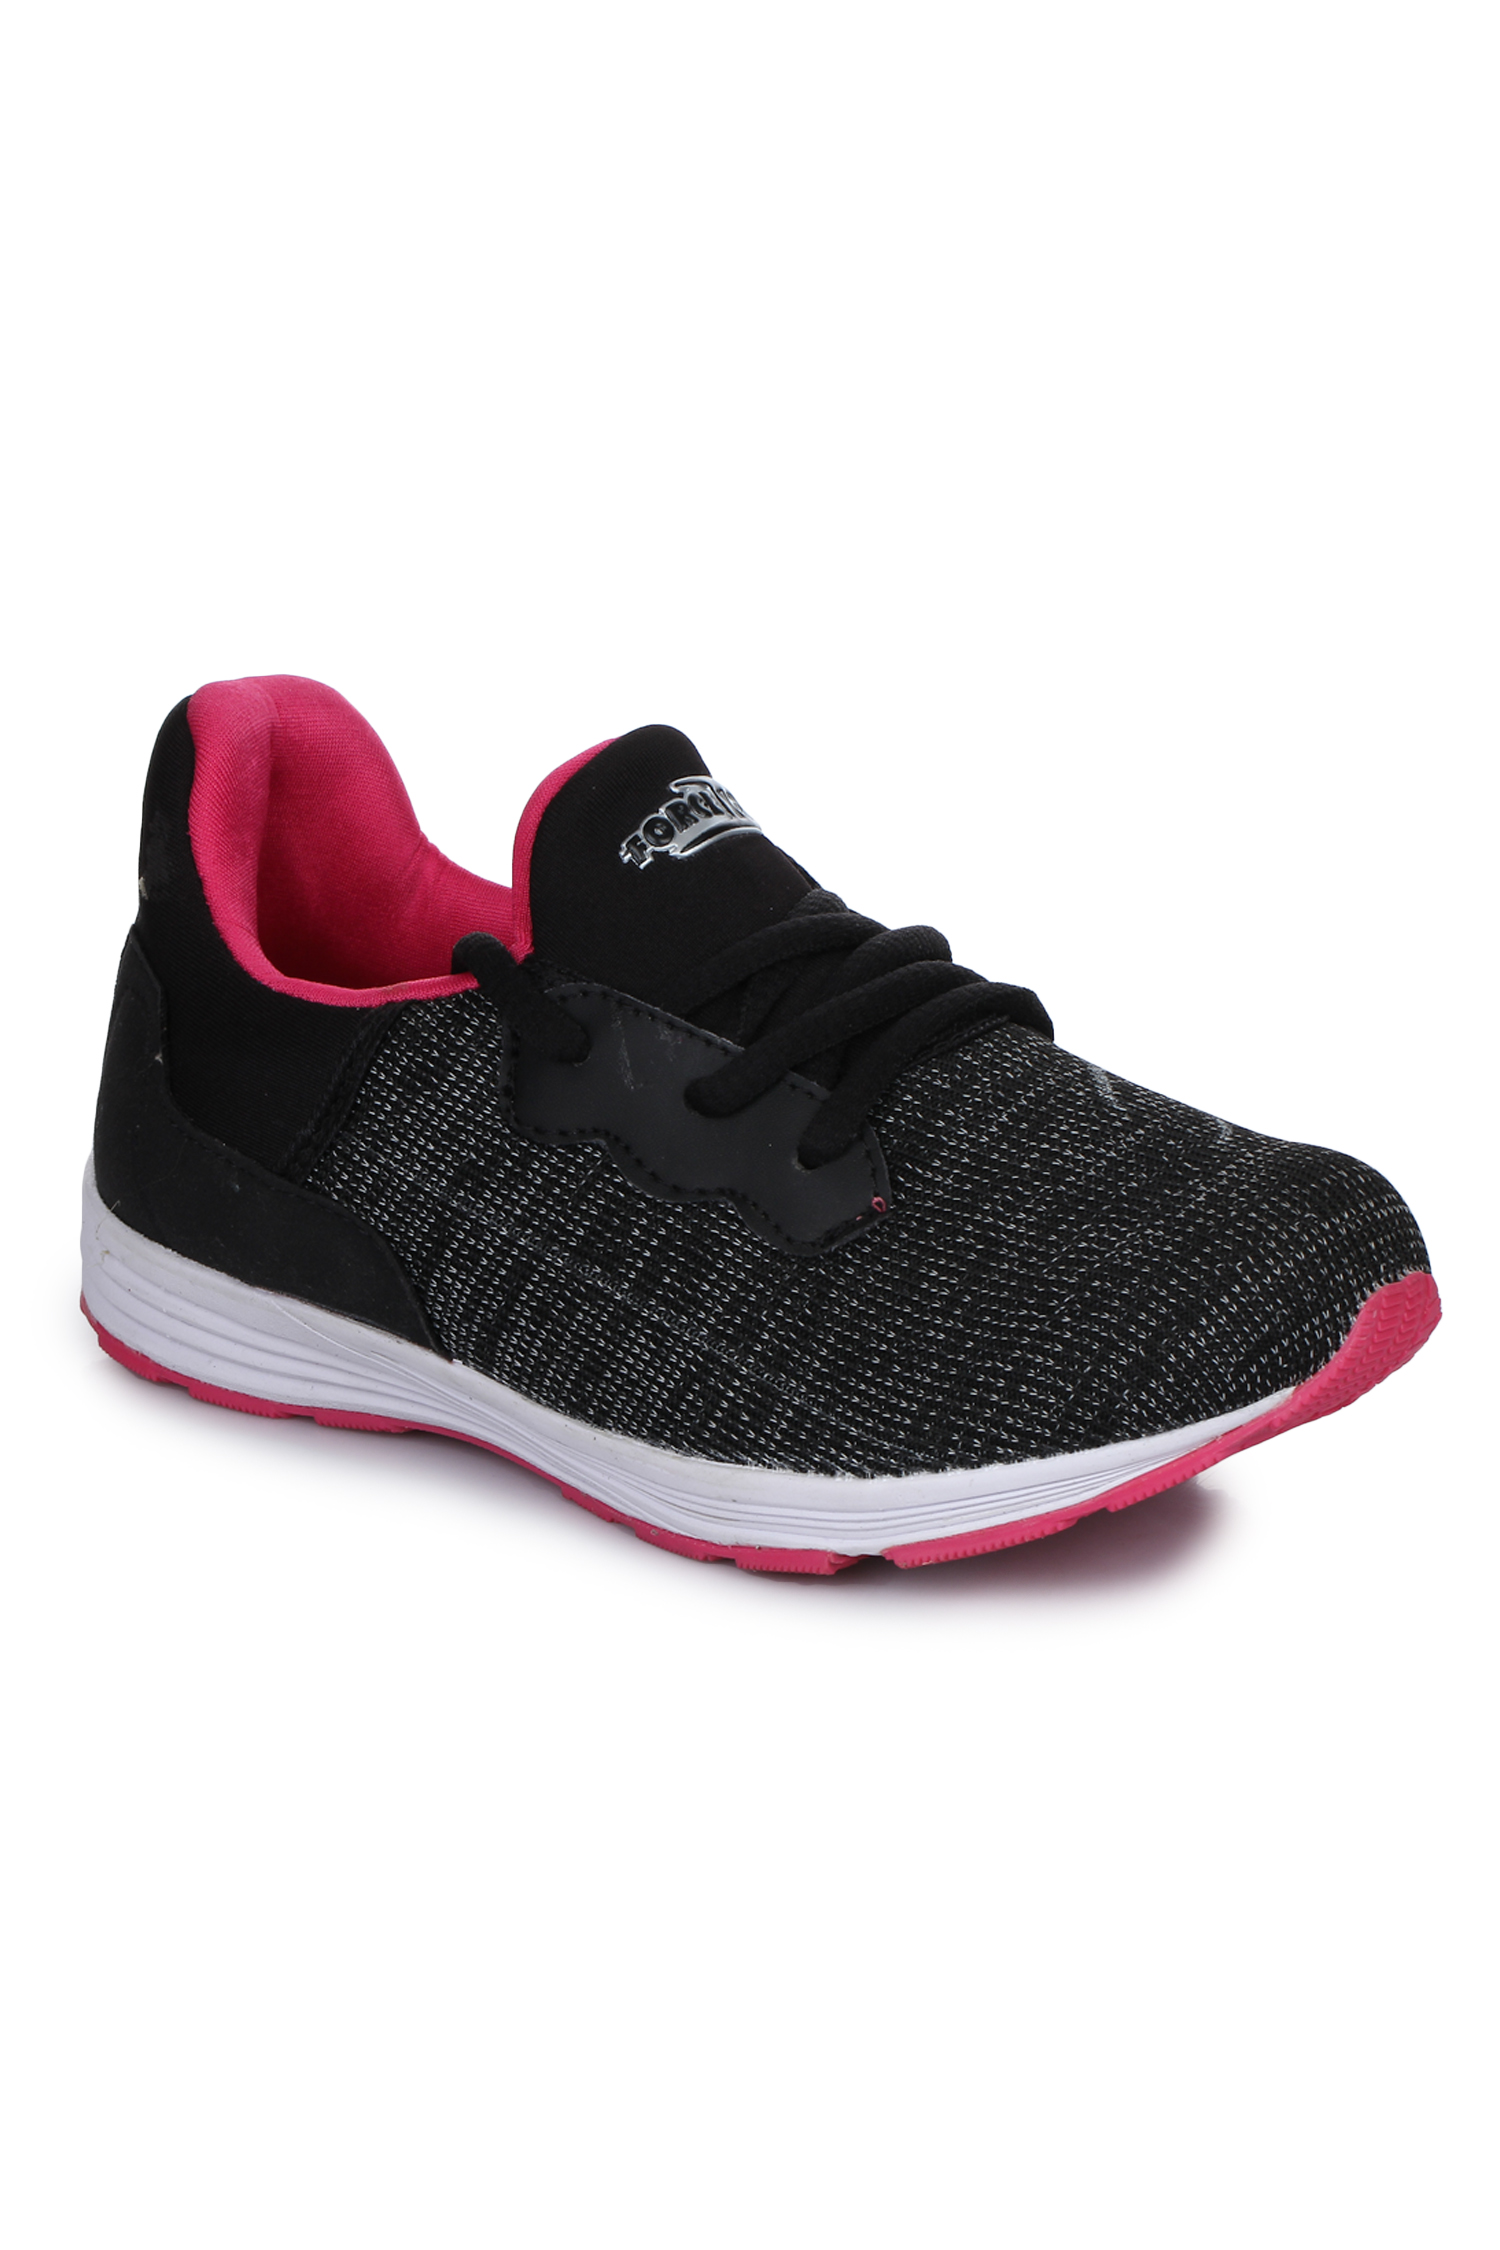 Liberty | Liberty Force 10 Blue Sports Running Shoes MARTIE-2N_Blue For - Women